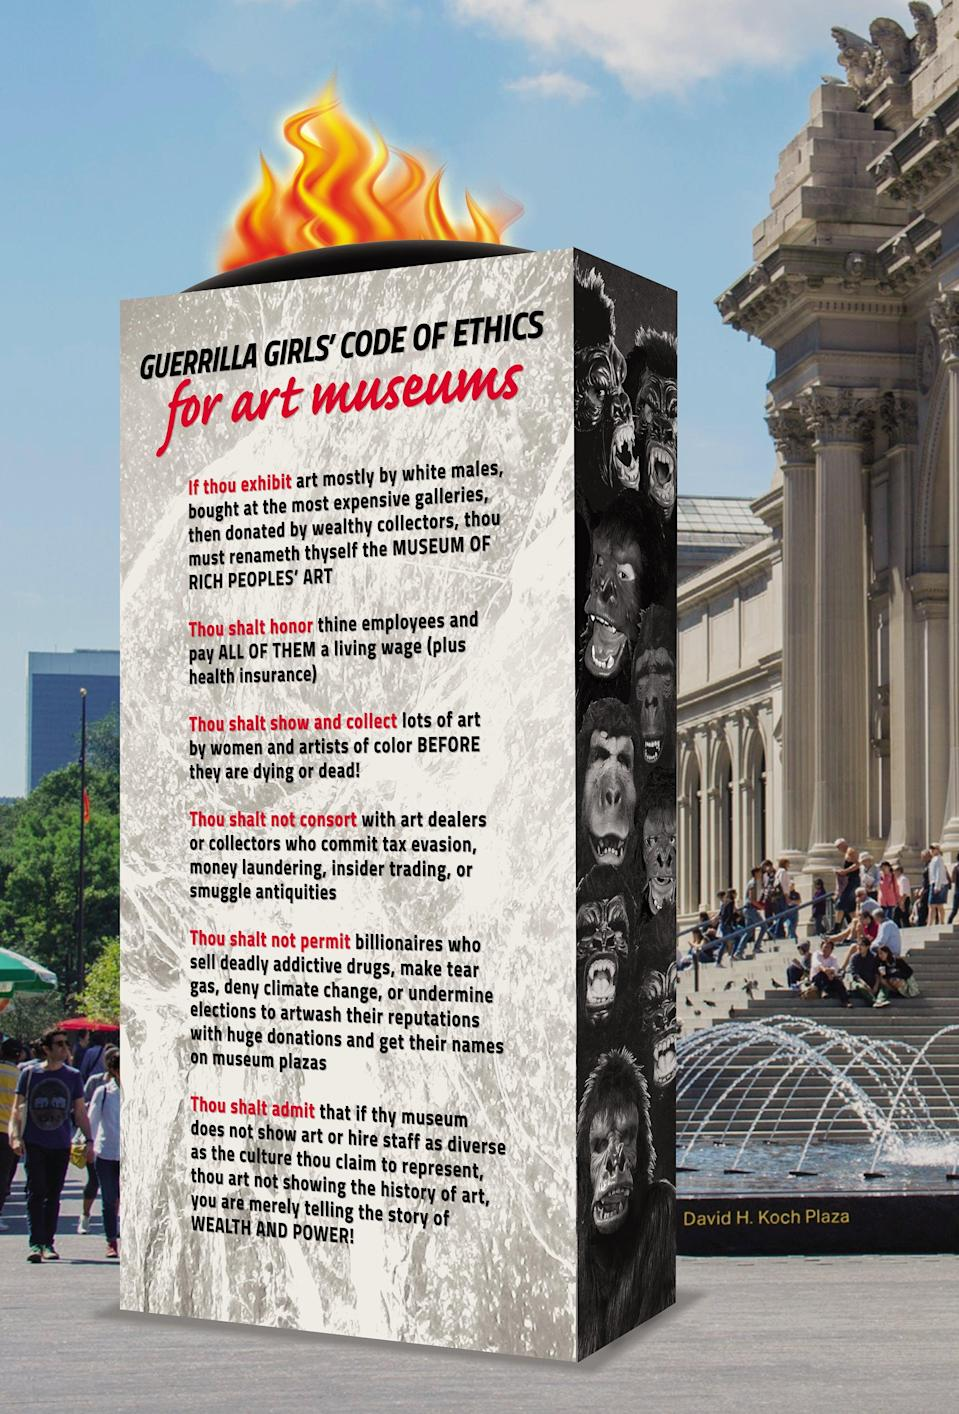 The ethics of how museums are run are part of their campaign (Guerrilla Girls)